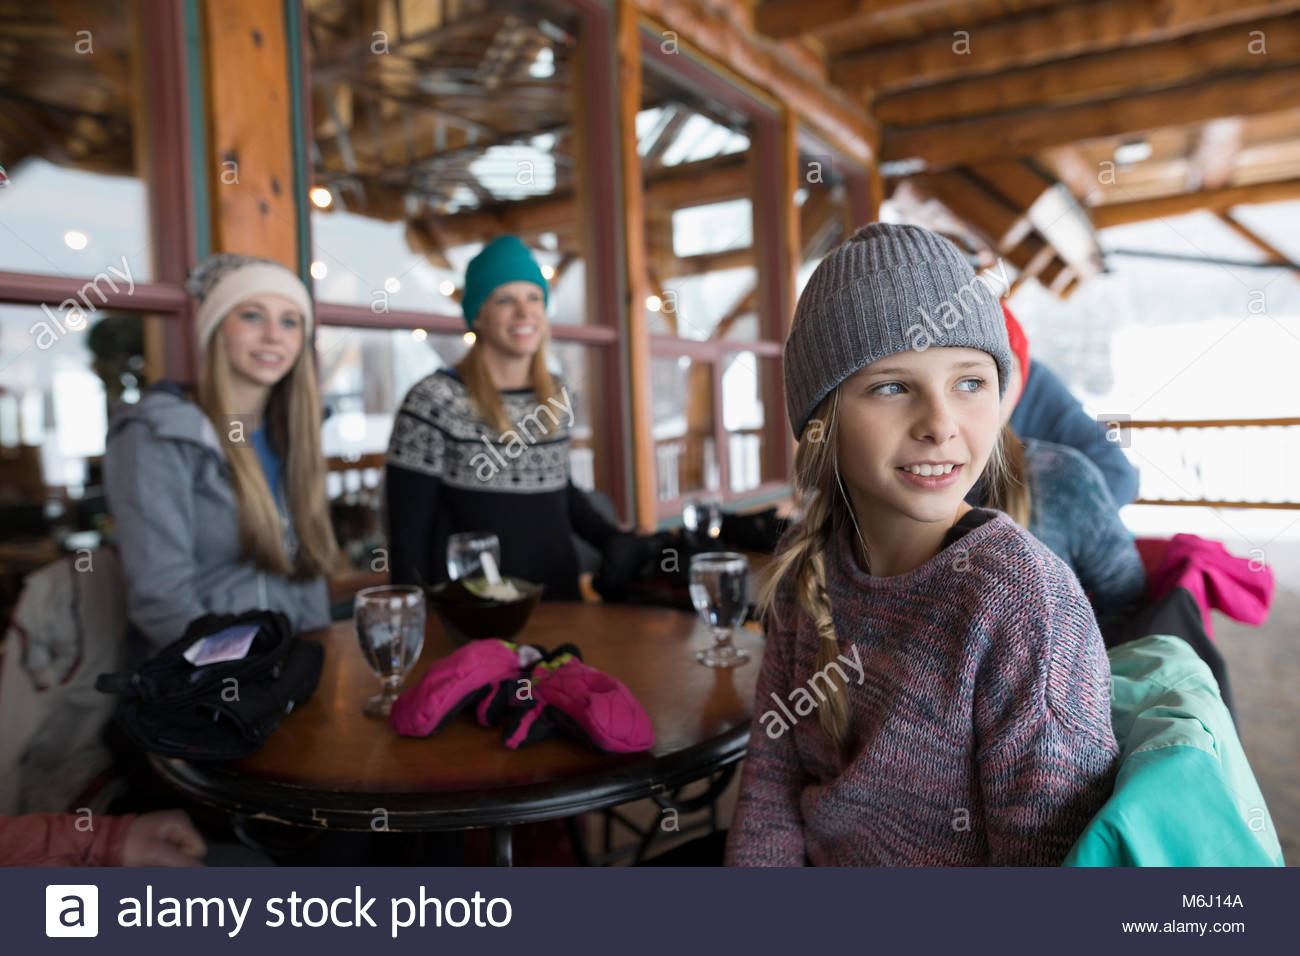 Curious girl skier with family sitting on ski resort lodge balcony apres-ski - Stock Image